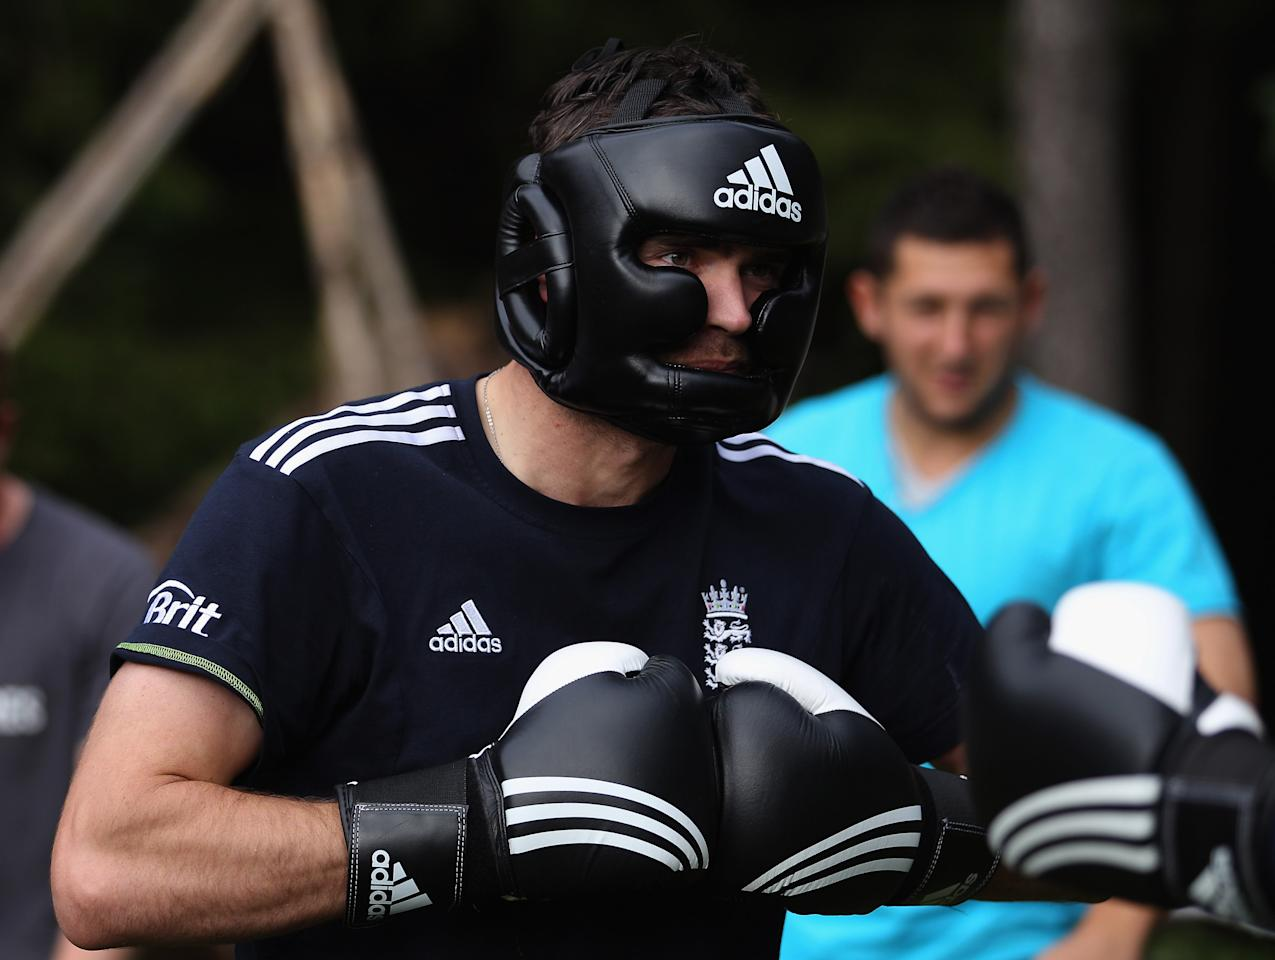 NUREMBERG, GERMANY - SEPTEMBER 26:  England player James Anderson prepares before a bout in the boxing excercise during the England Cricket squad Pre Ashes Training Camp on September 26, 2010 near Nuremberg, Germany.  (Photo by Stu Forster/Getty Images)